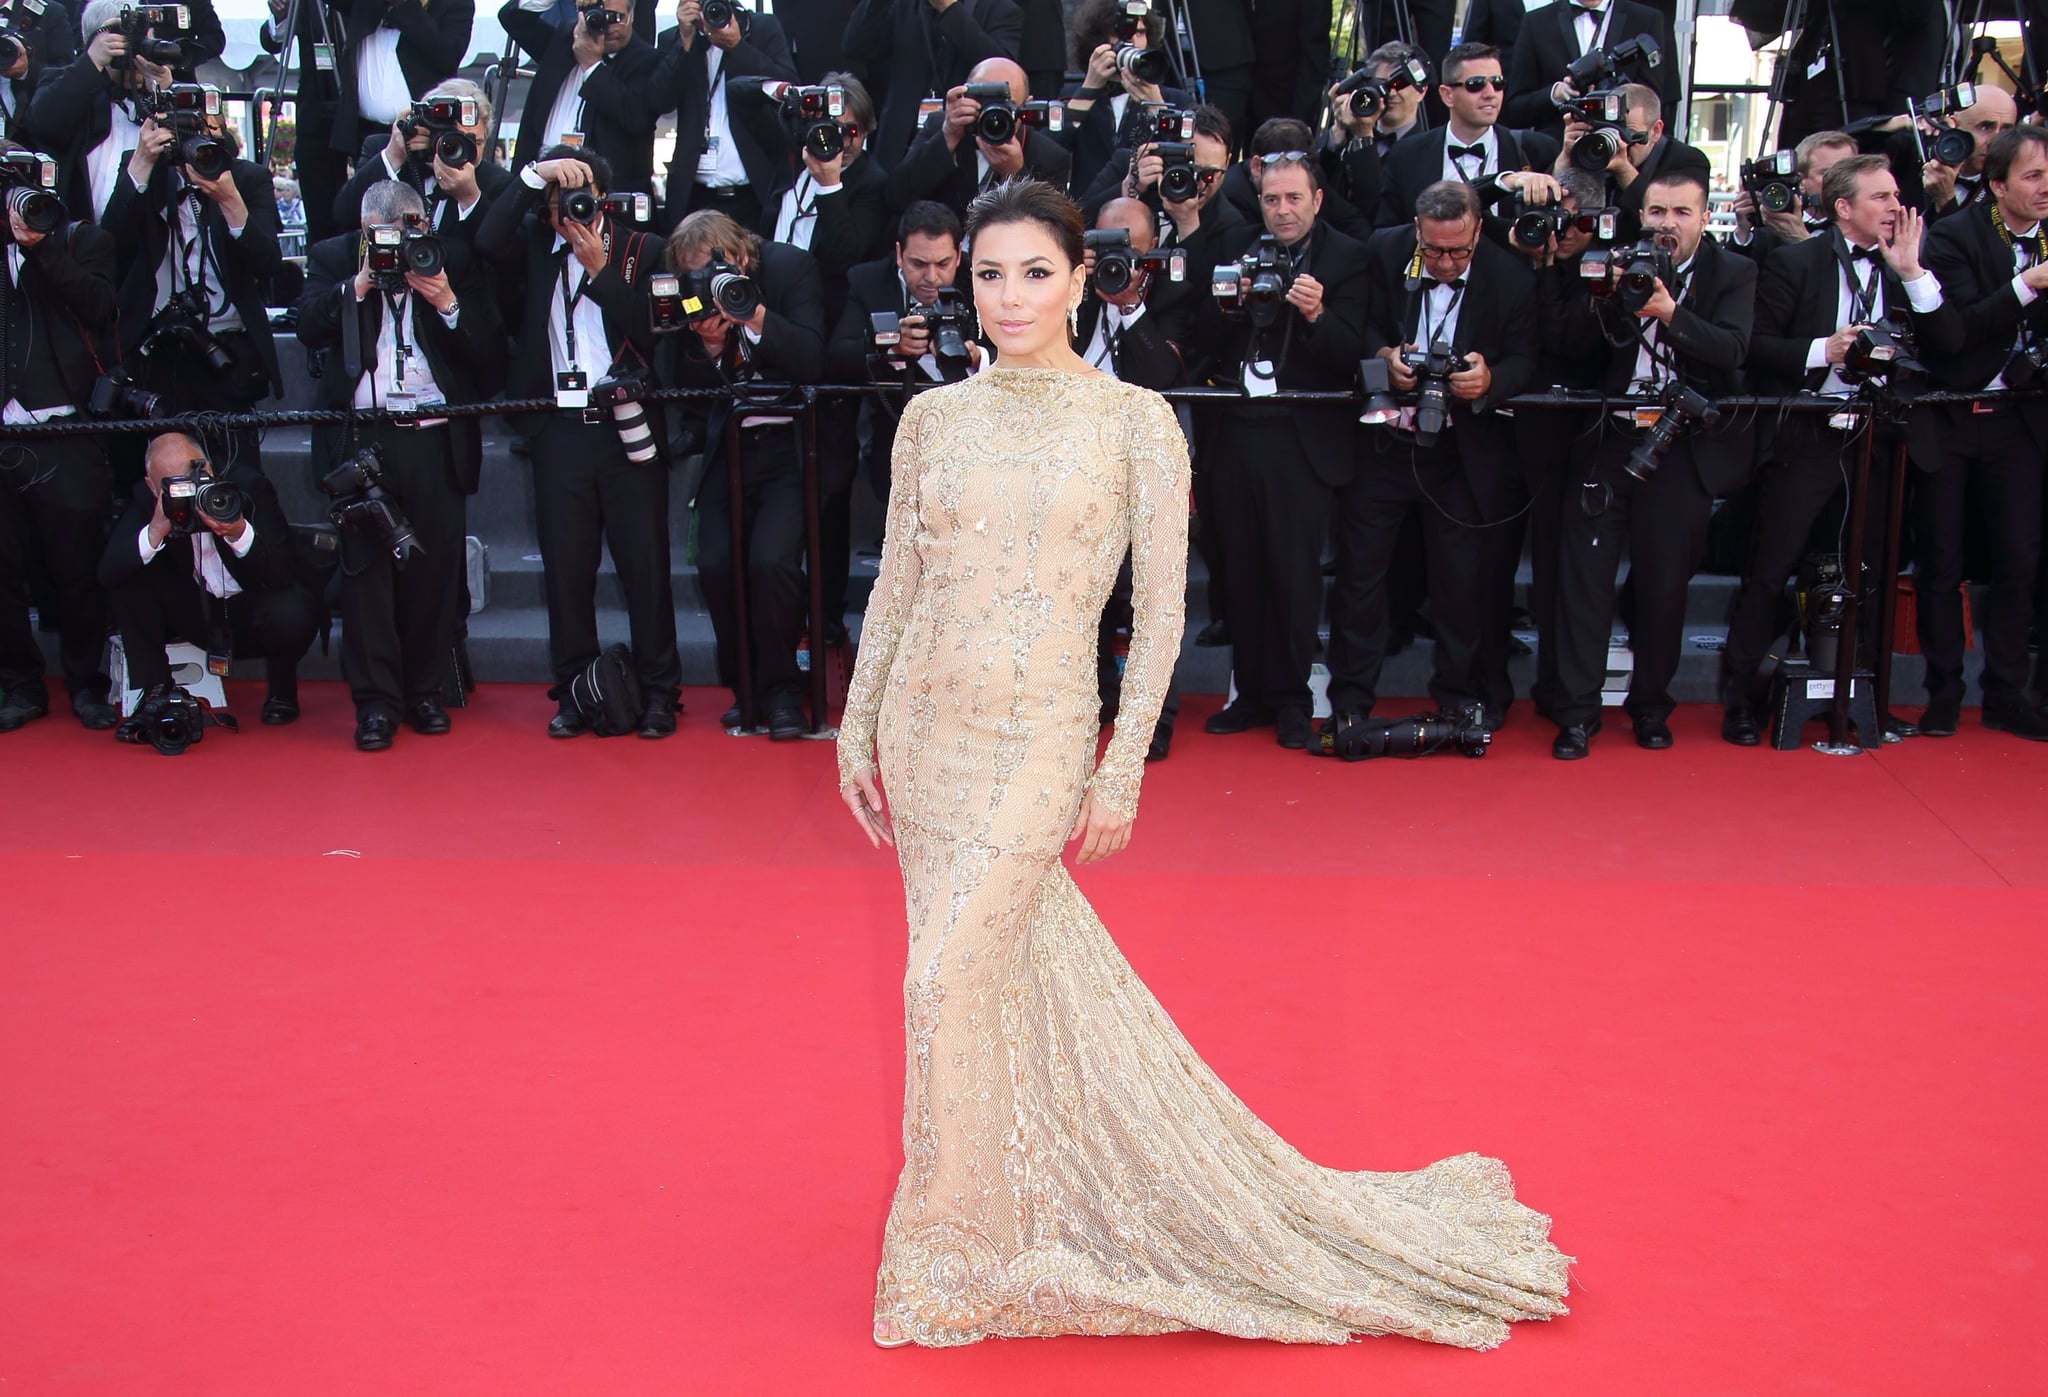 Eva Longoria brought the drama to the Cannes premiere of Le Passe in her Zuhair Murad Couture gown.